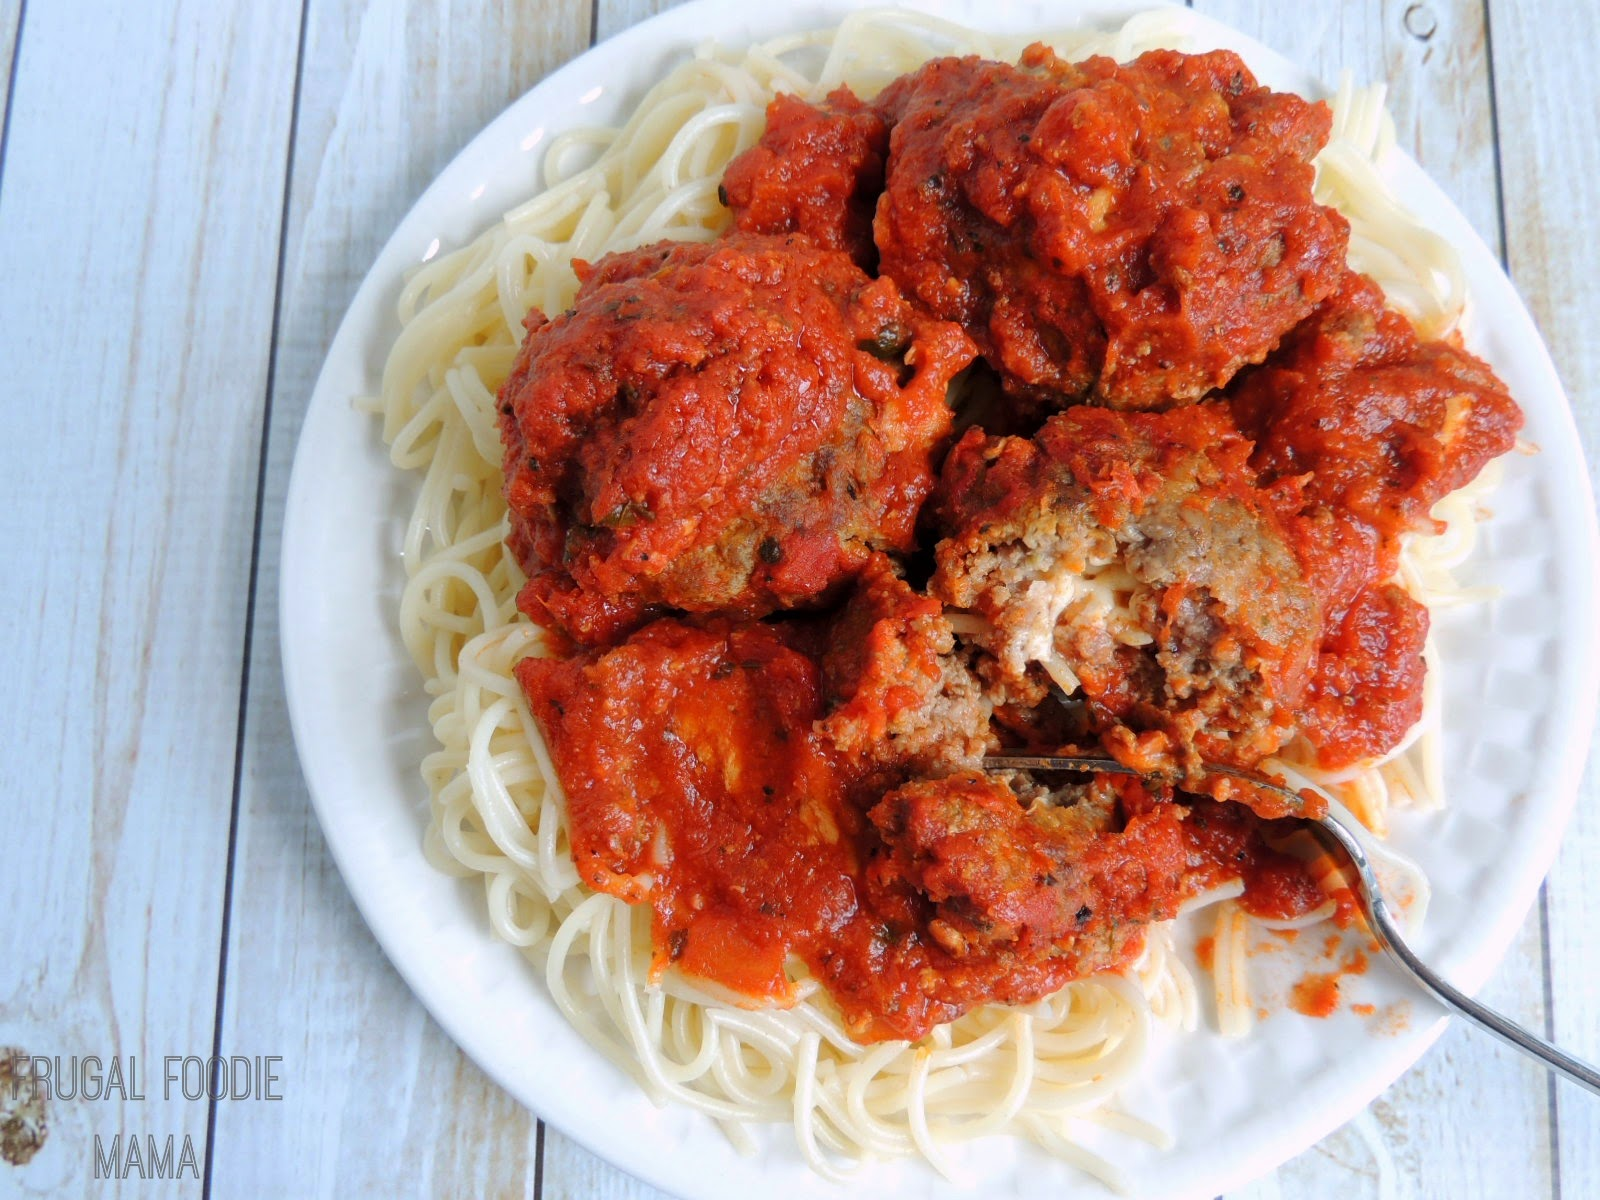 Double Mozzarella Stuffed Meatballs via thefrugalfoodiemama.com #slowcooker